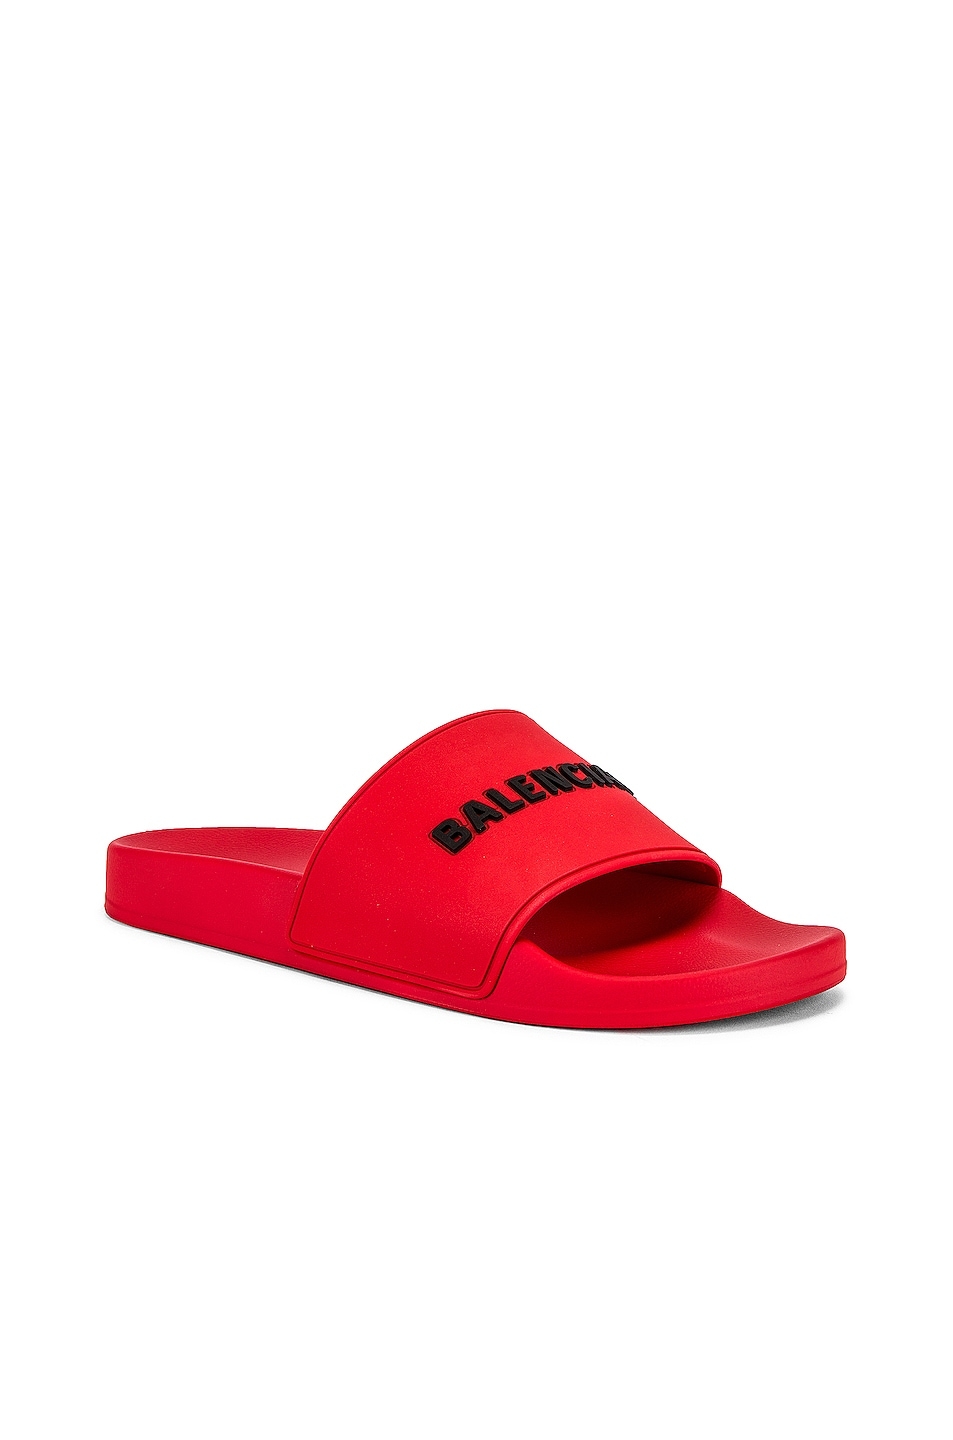 Image 1 of Balenciaga Pool Slide in Red & Black